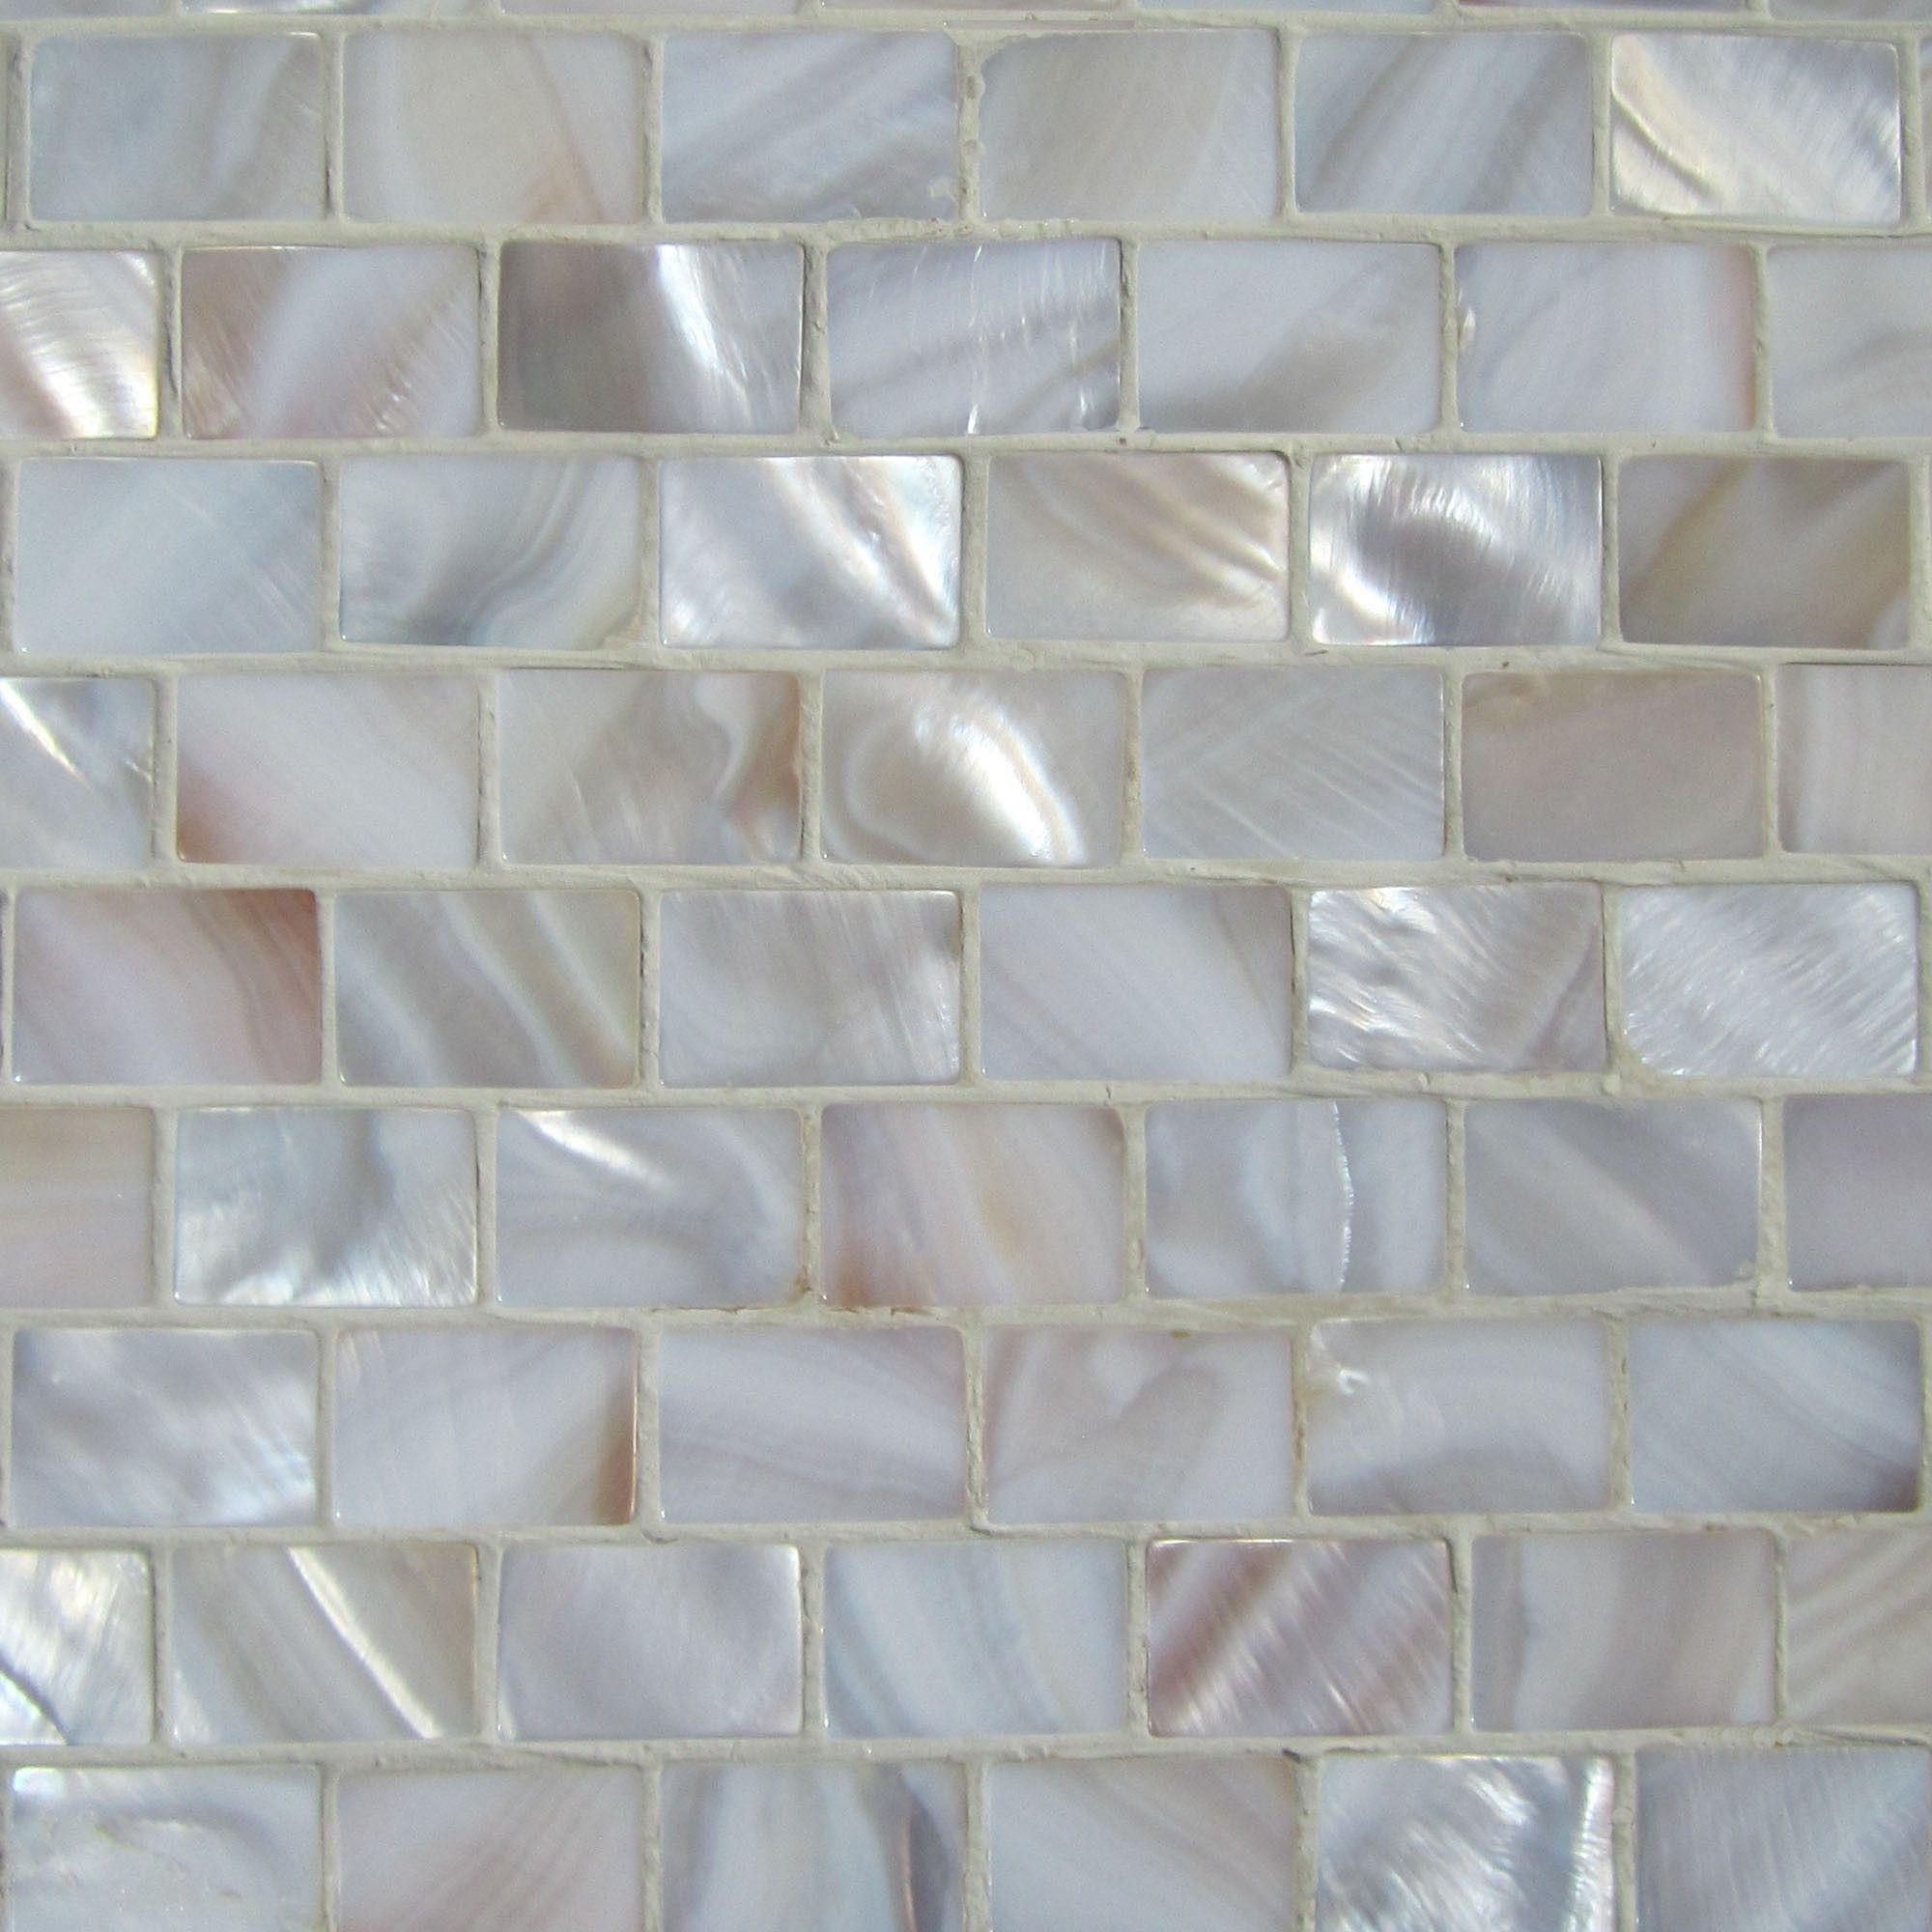 Paua tiles for bathroom - Natural Varied Mother Of Pearl Minibrick Love The Idea Of This As Fireplace Surround Tiles For Bathroomsbathroom